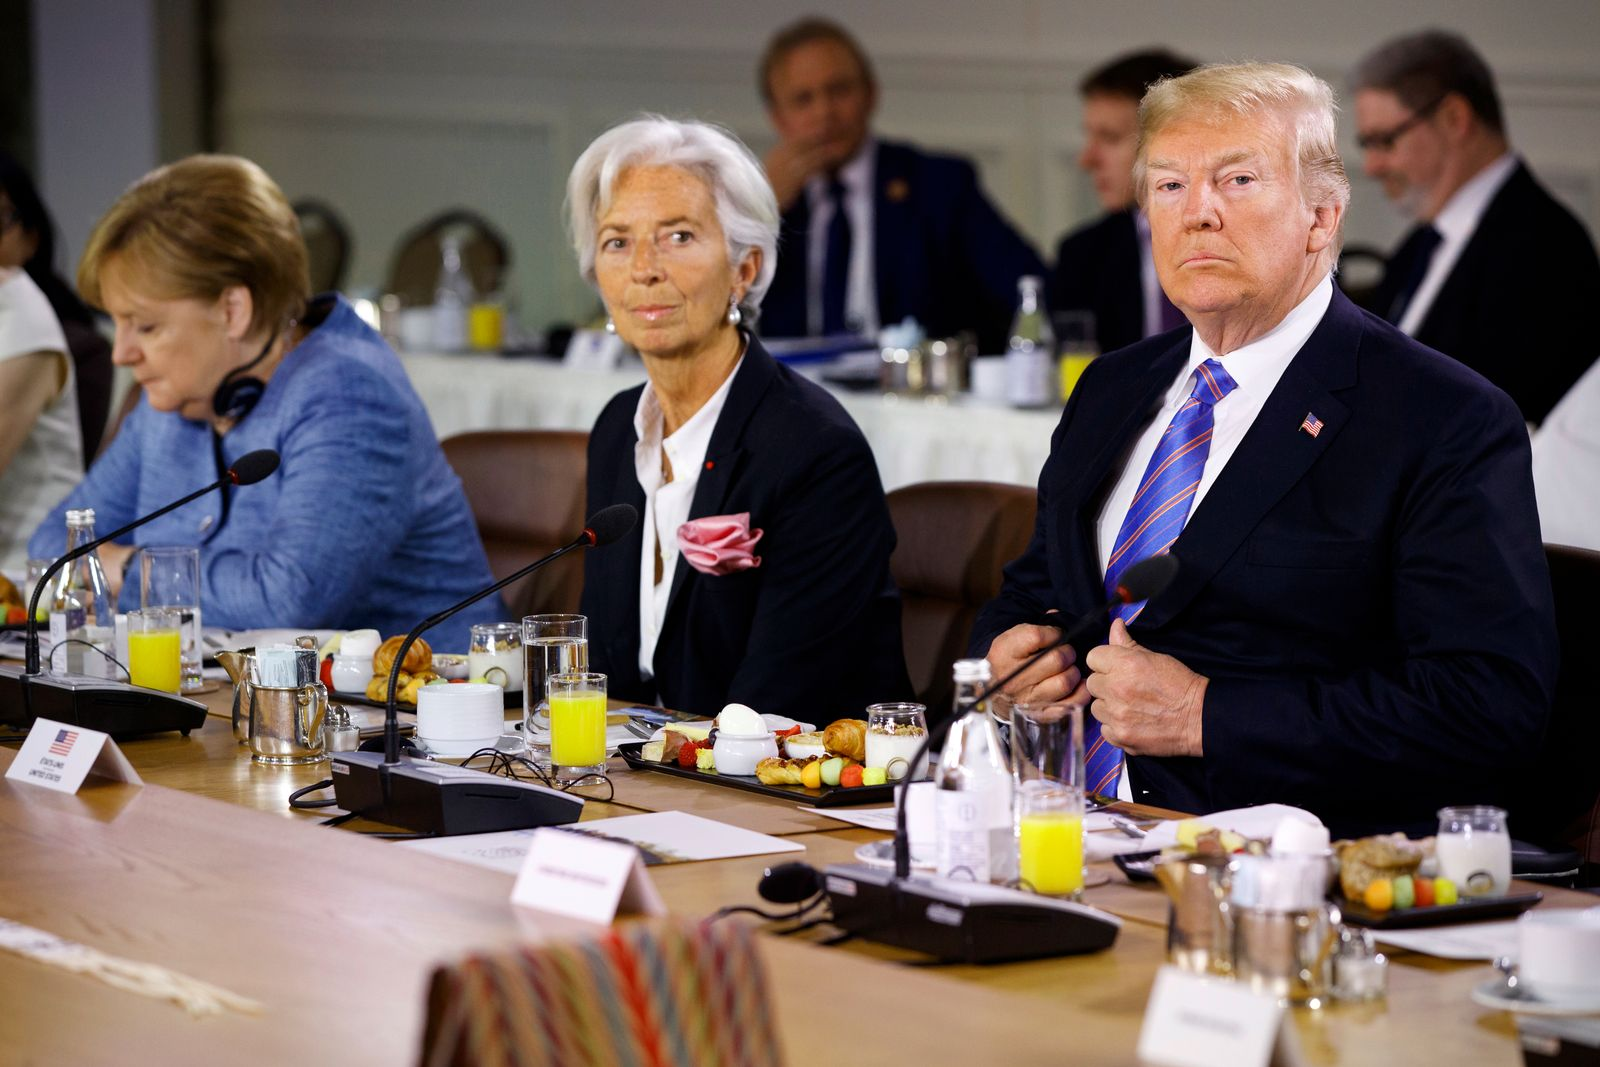 Donald Trump / Christine Lagarde